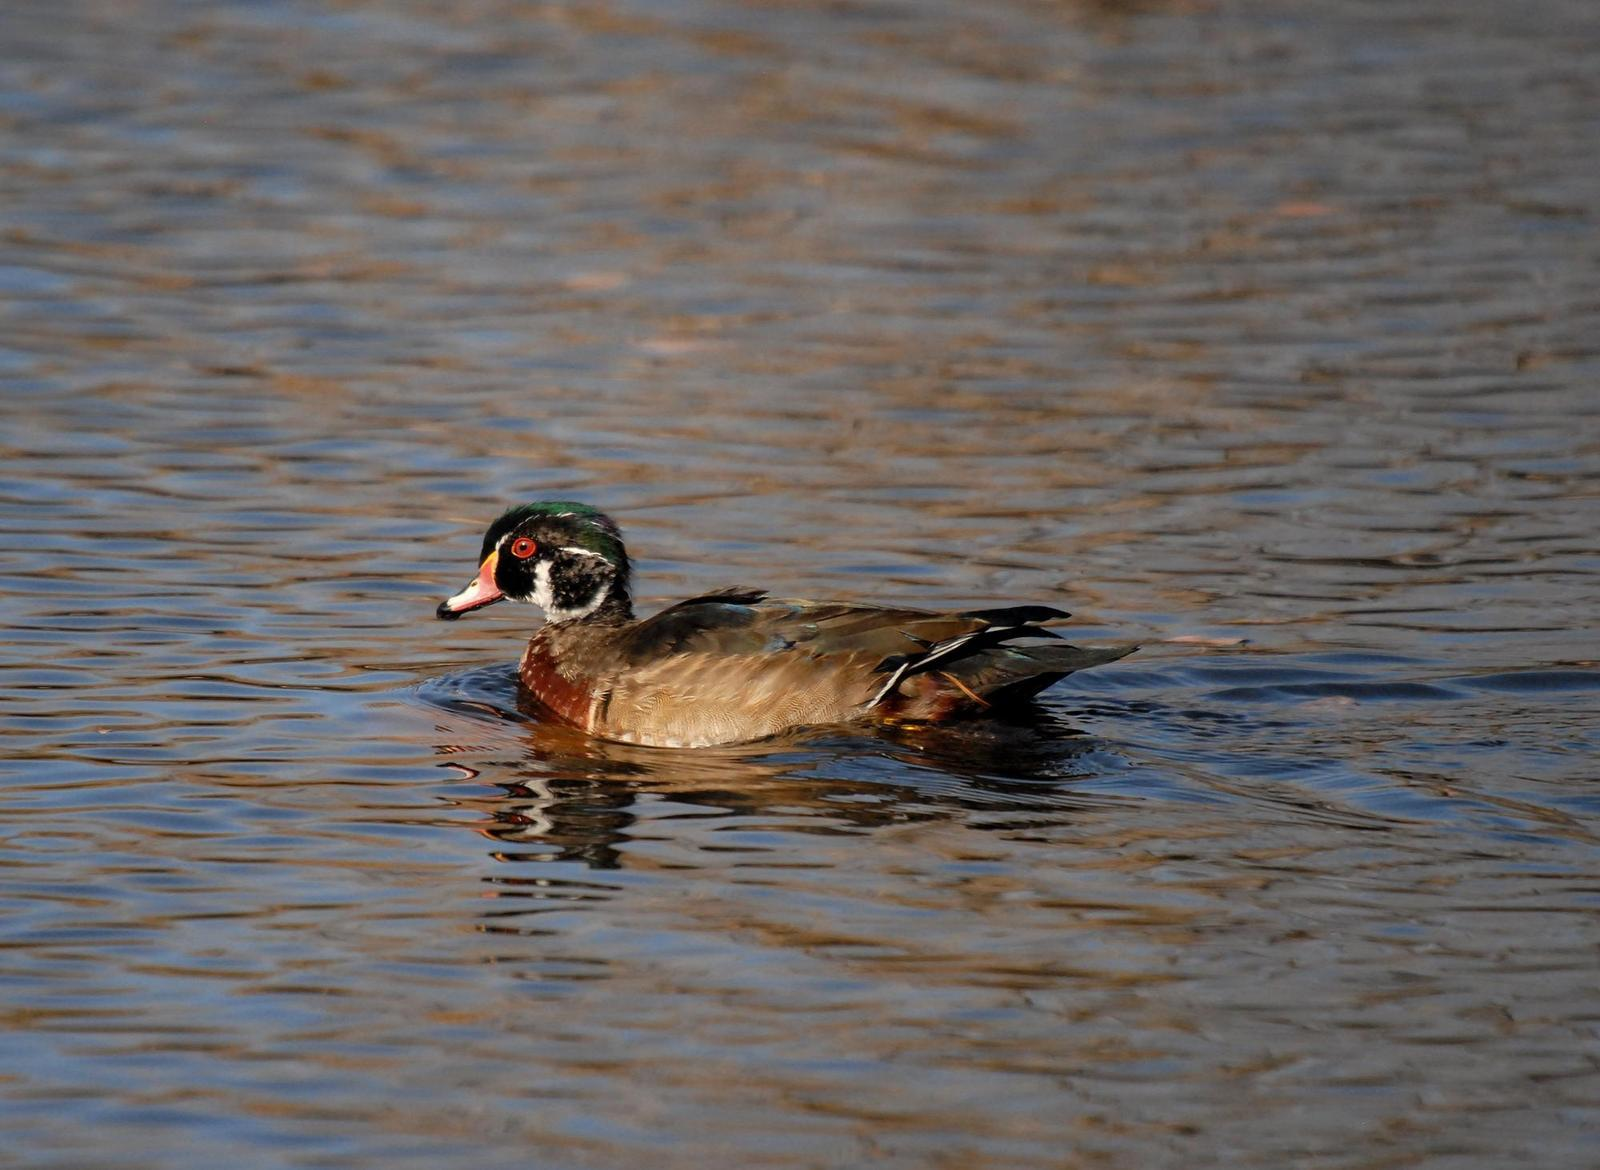 Wood Duck Photo by Steven Mlodinow